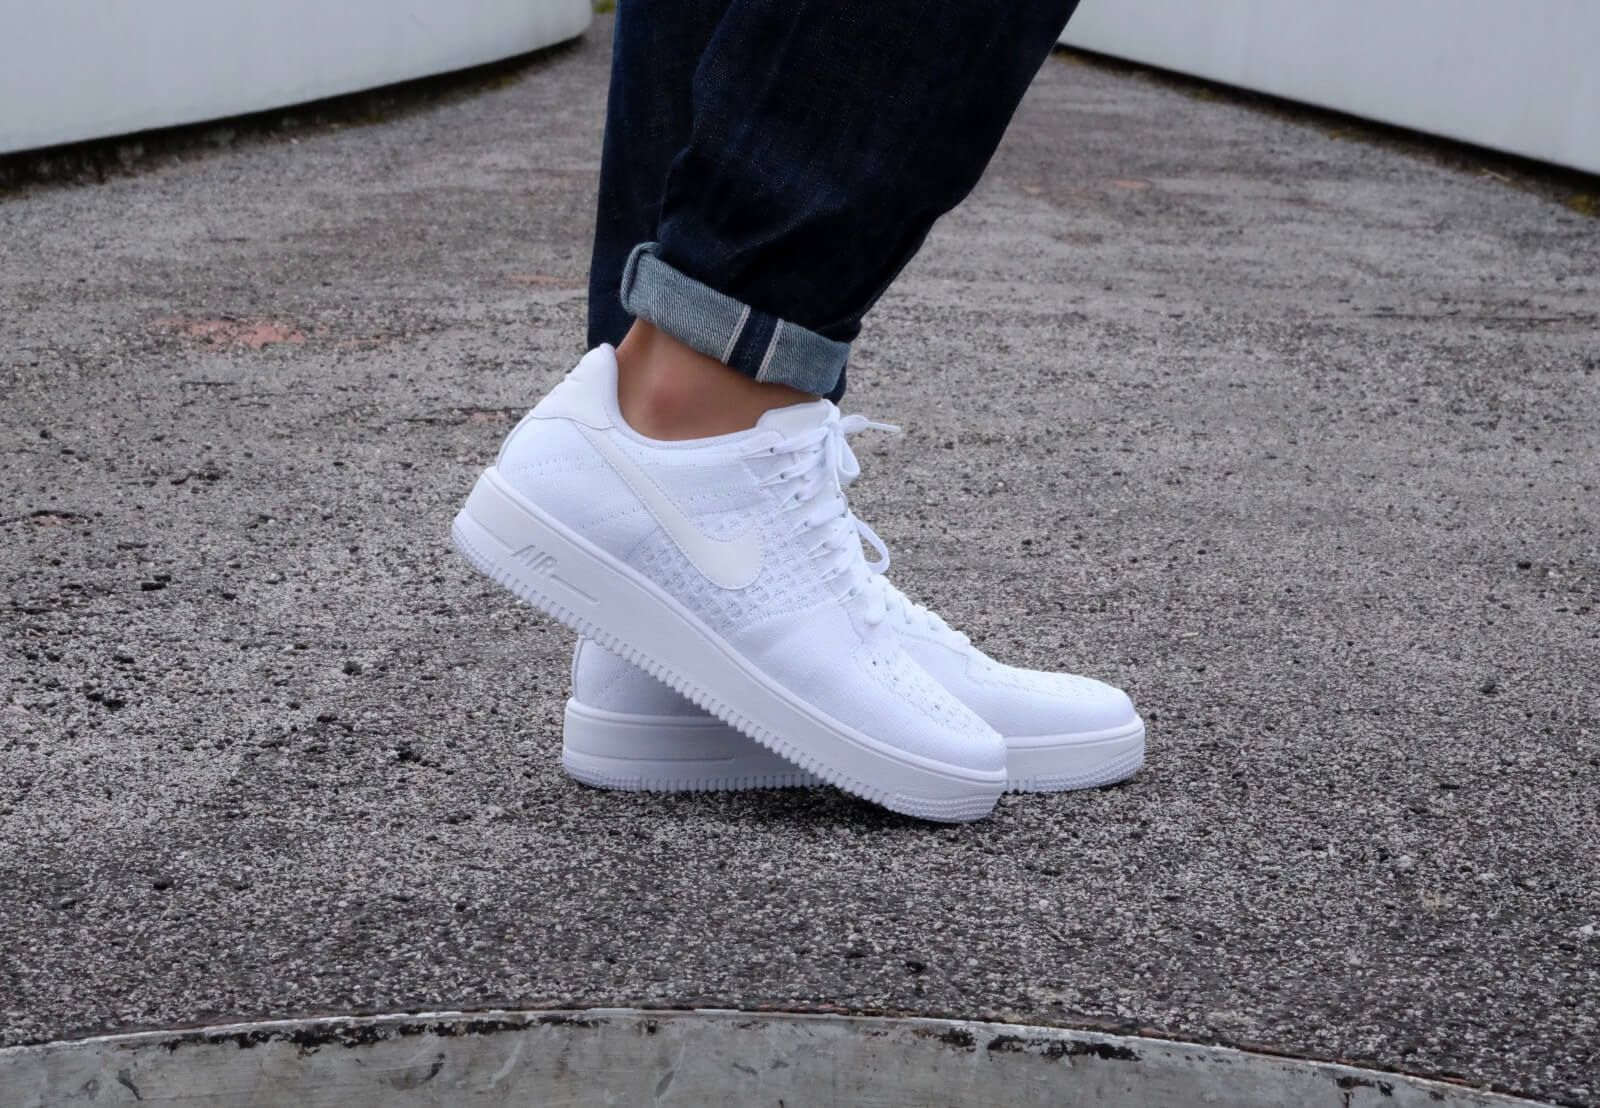 nike air force 1 ultra flyknit low white 817419101